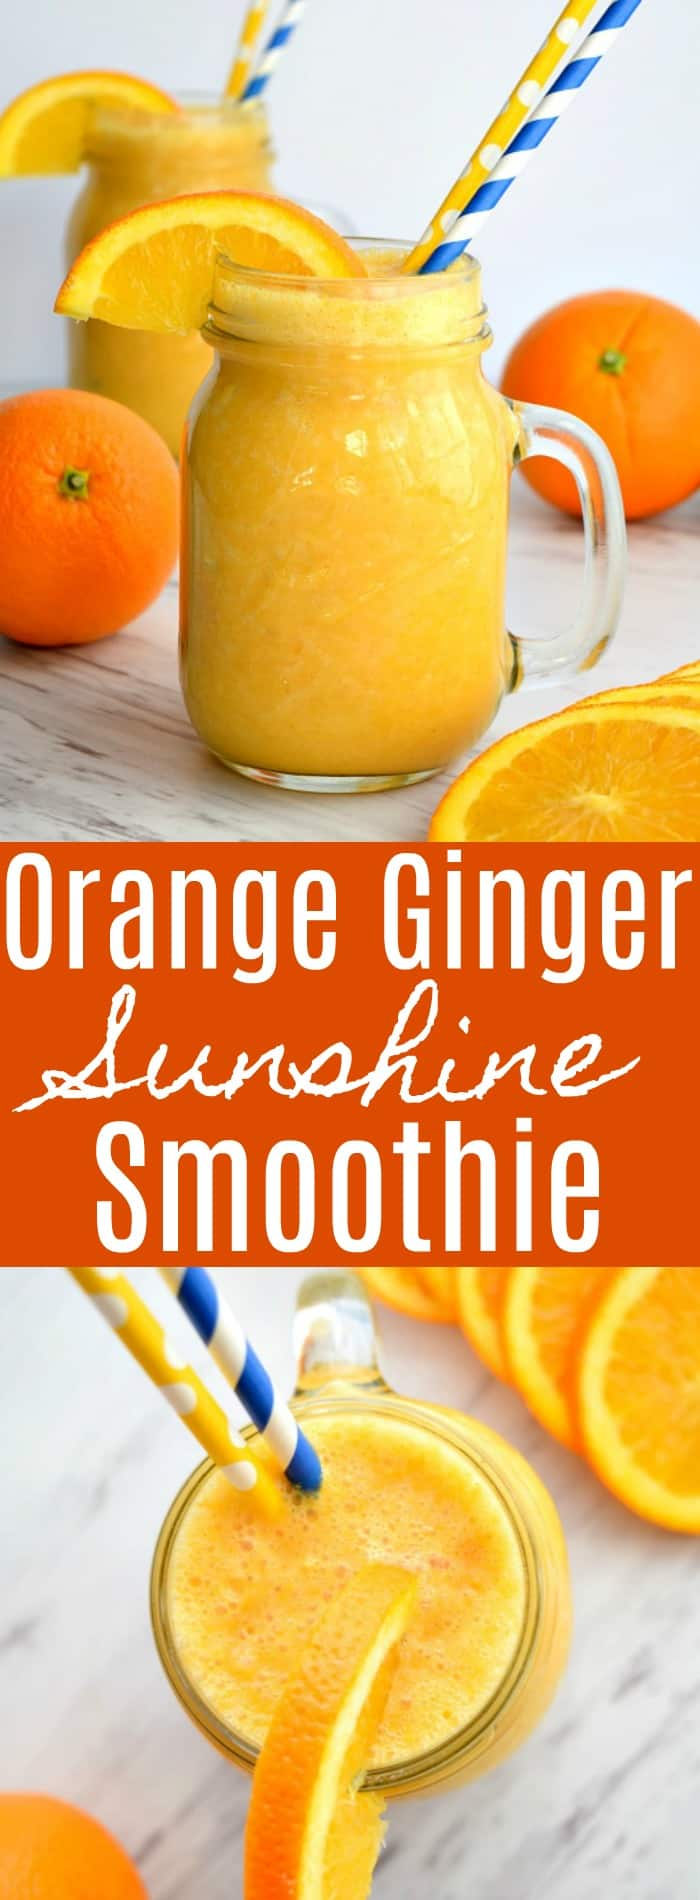 Orange Ginger Sunshine Smoothie